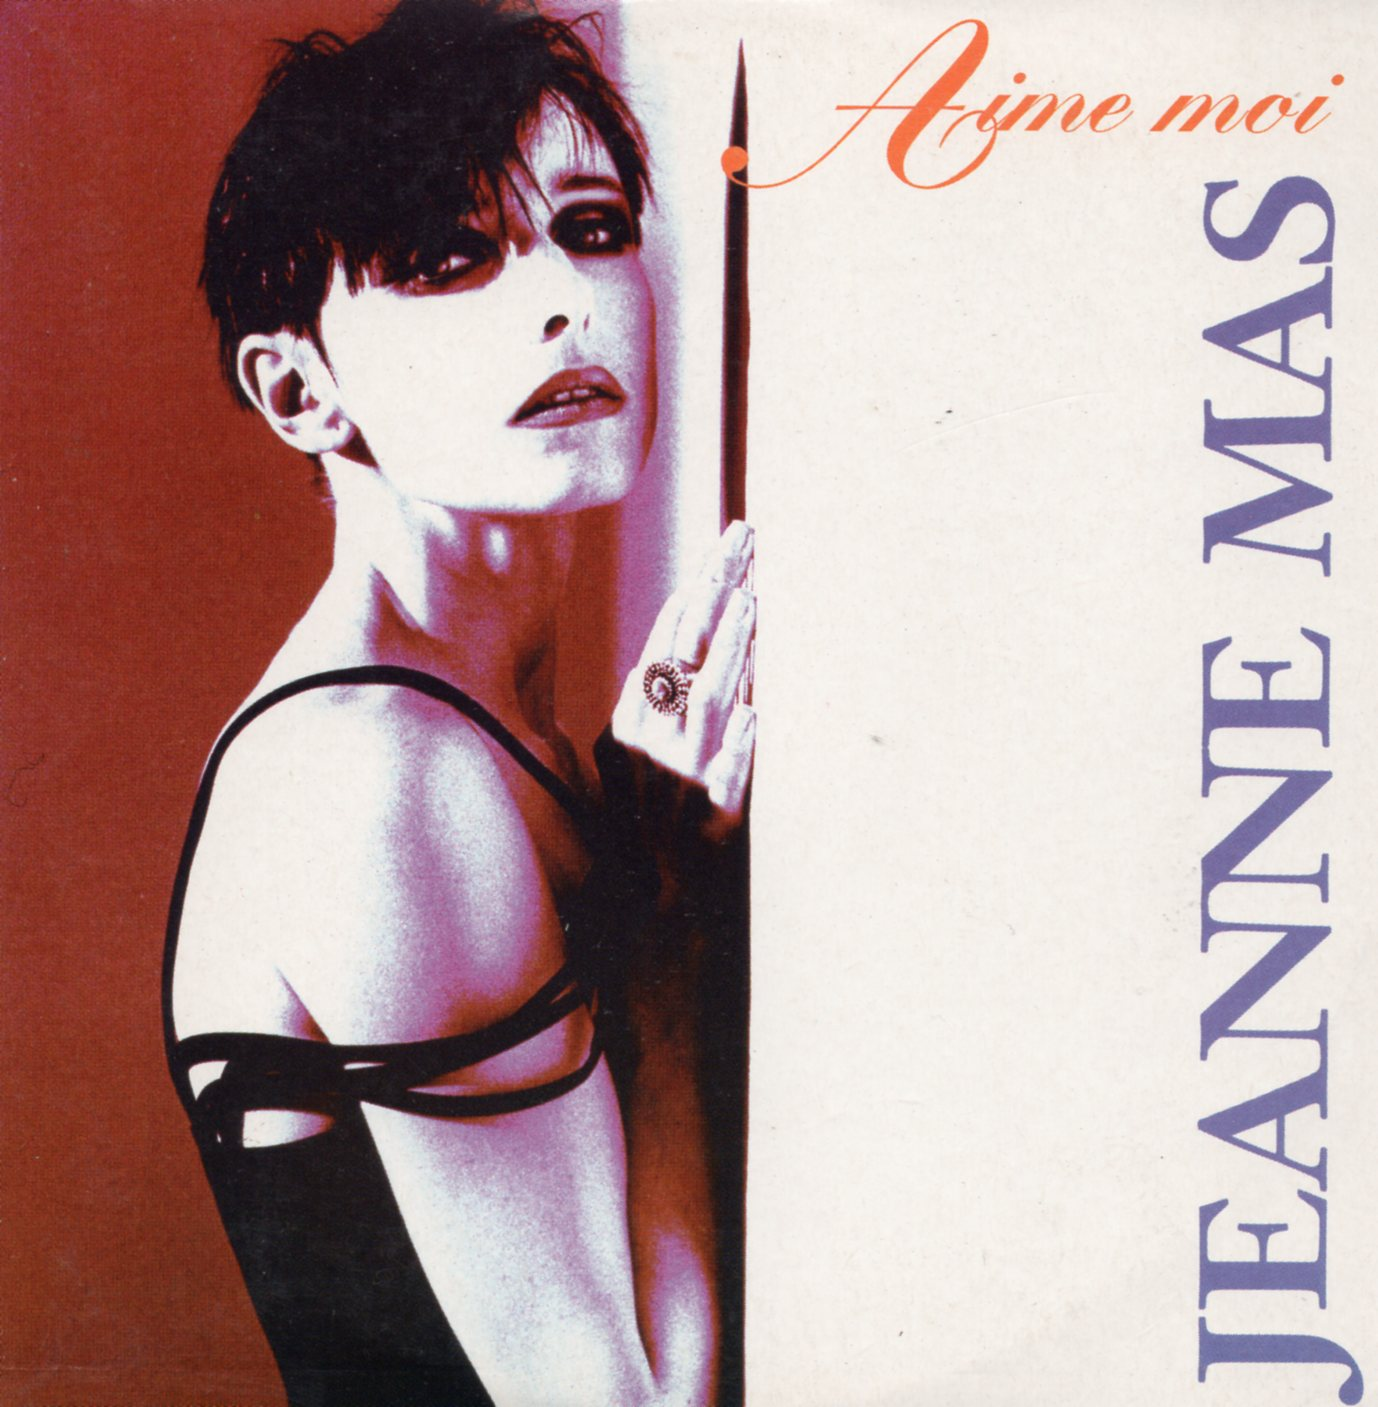 JEANNE MAS - Aime moi 2-Track CARD SLEEVE - CD single